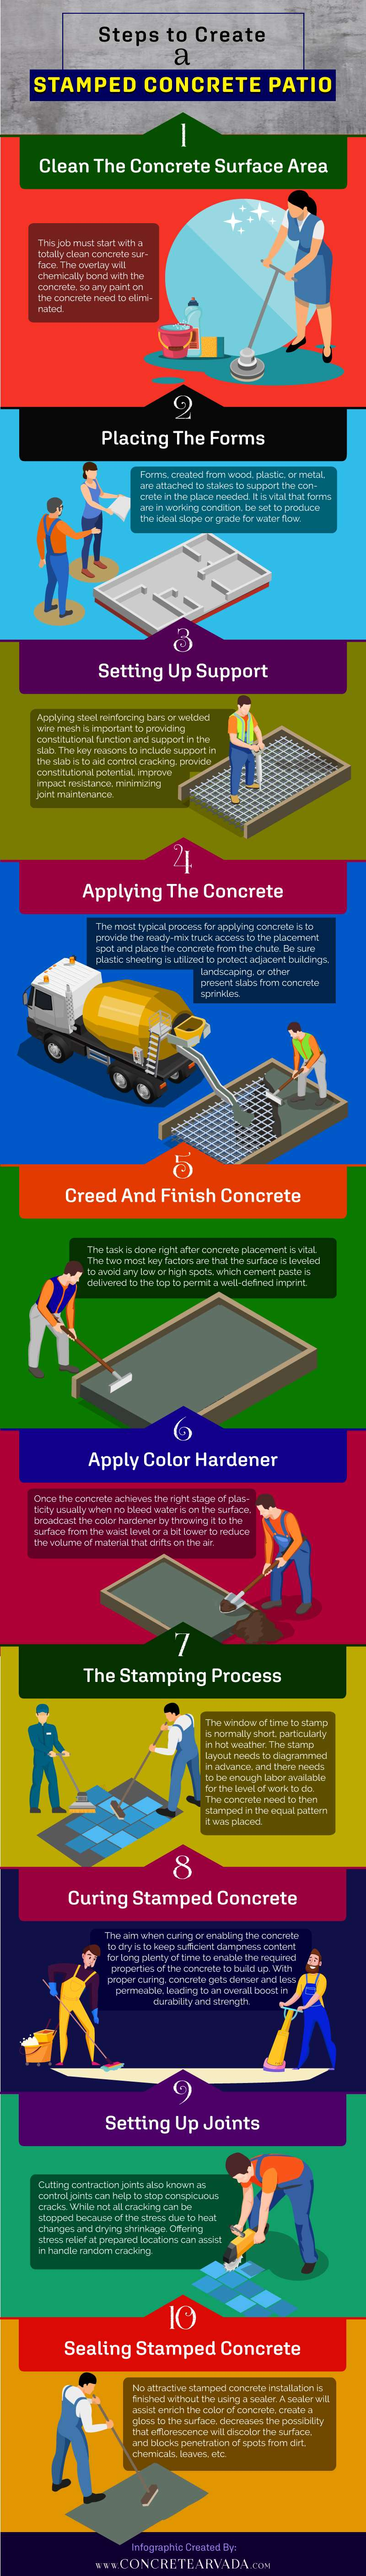 Steps to Create A Stamped Concrete Patio